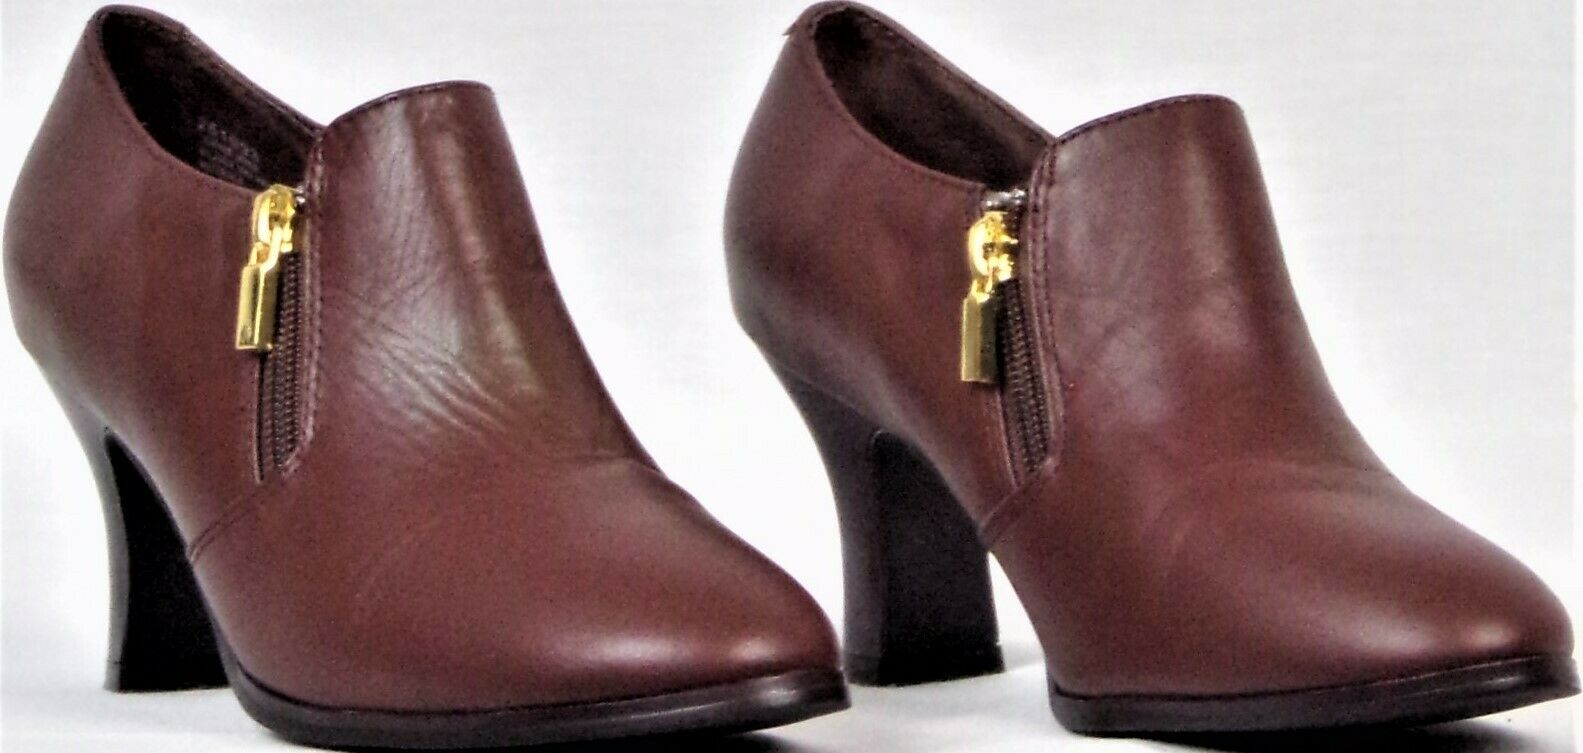 AJ VALENCI size 6M brown mid-heel booties leather uppers